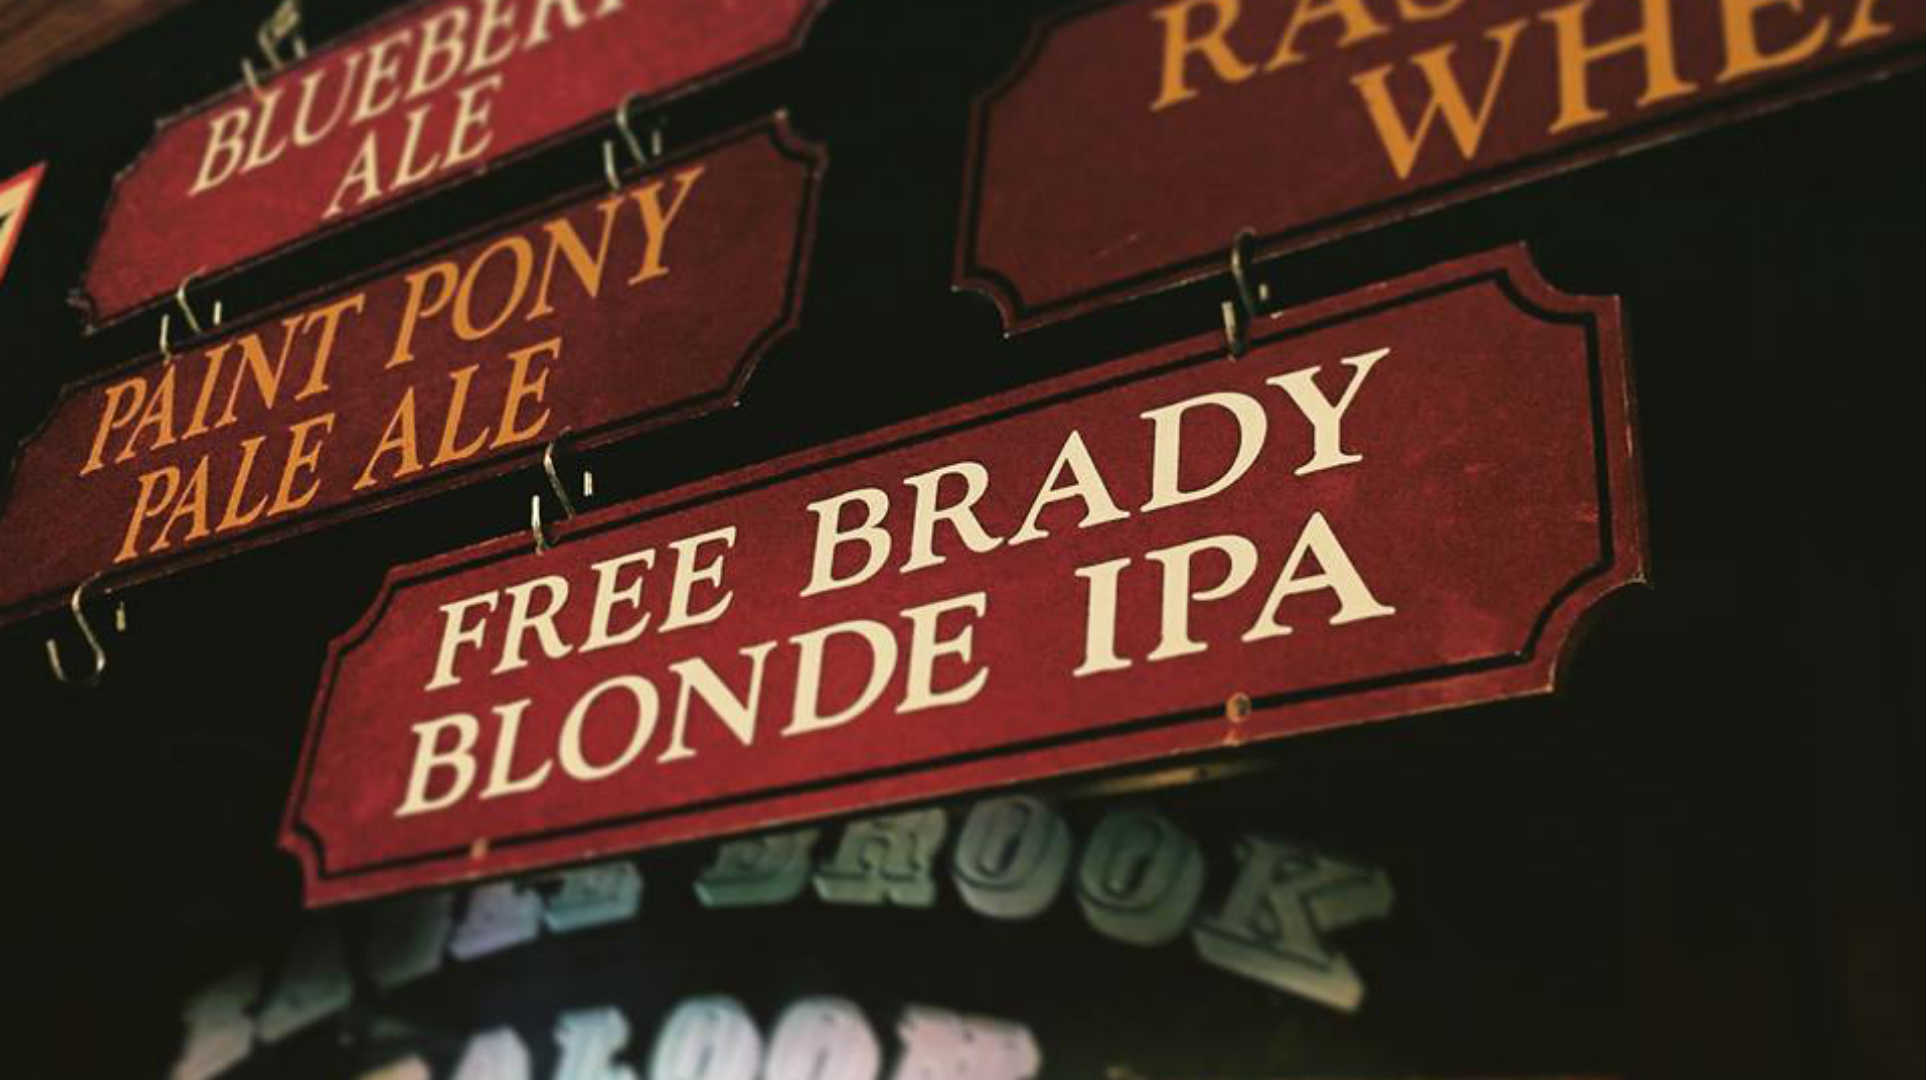 Patriots protesters' top draft pick? Free Brady Blonde IPA